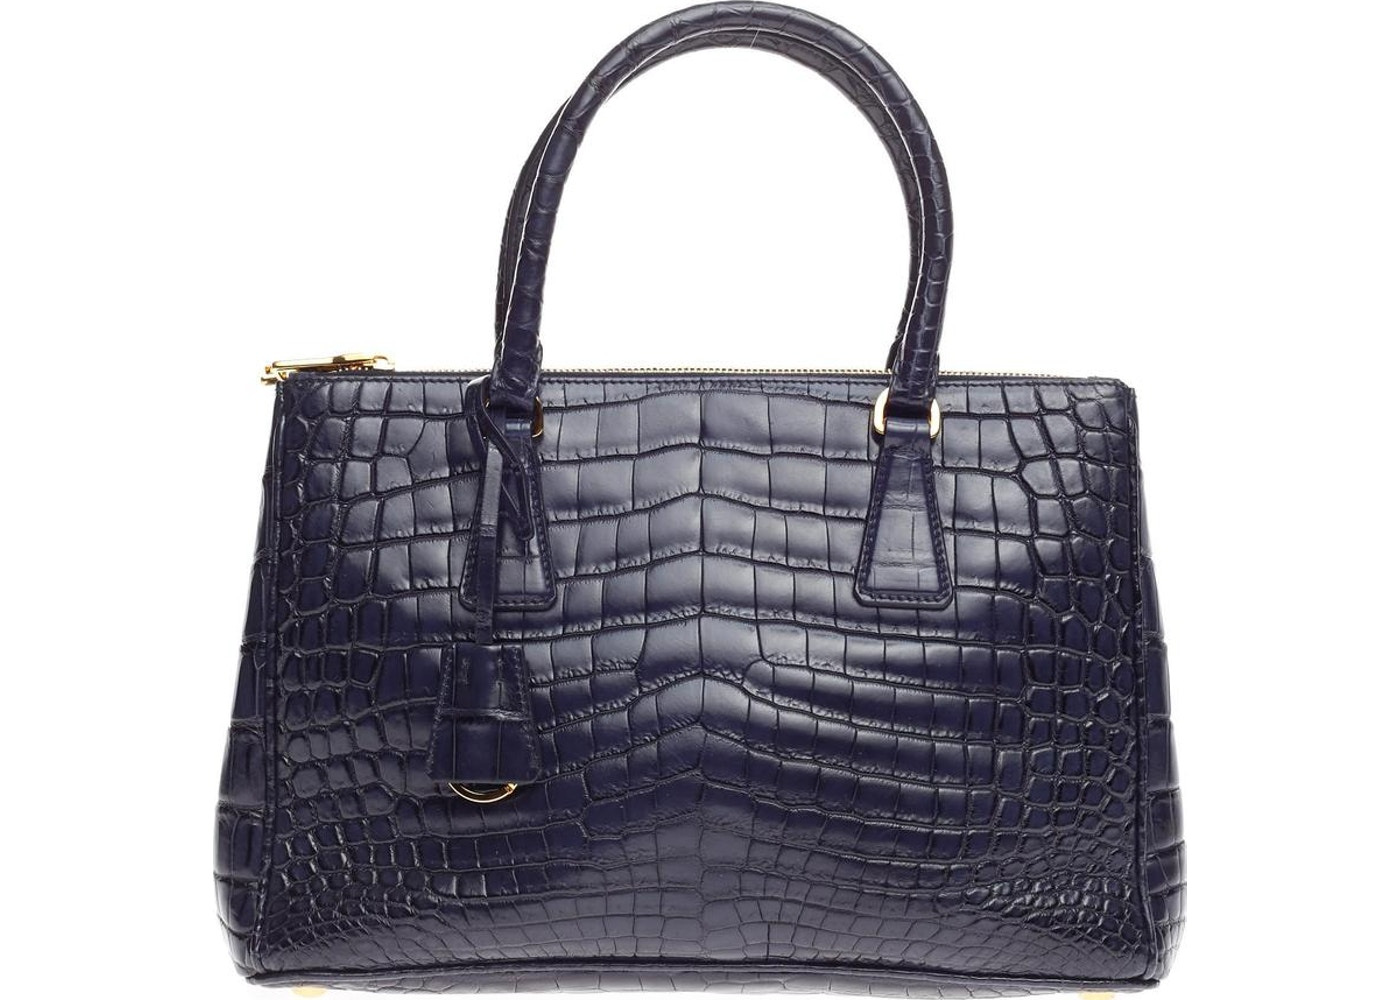 7cd1f8b71c89 Prada Double Zip Tote Crocodile Embossed Small Dark Blue. Crocodile  Embossed Small Dark Blue